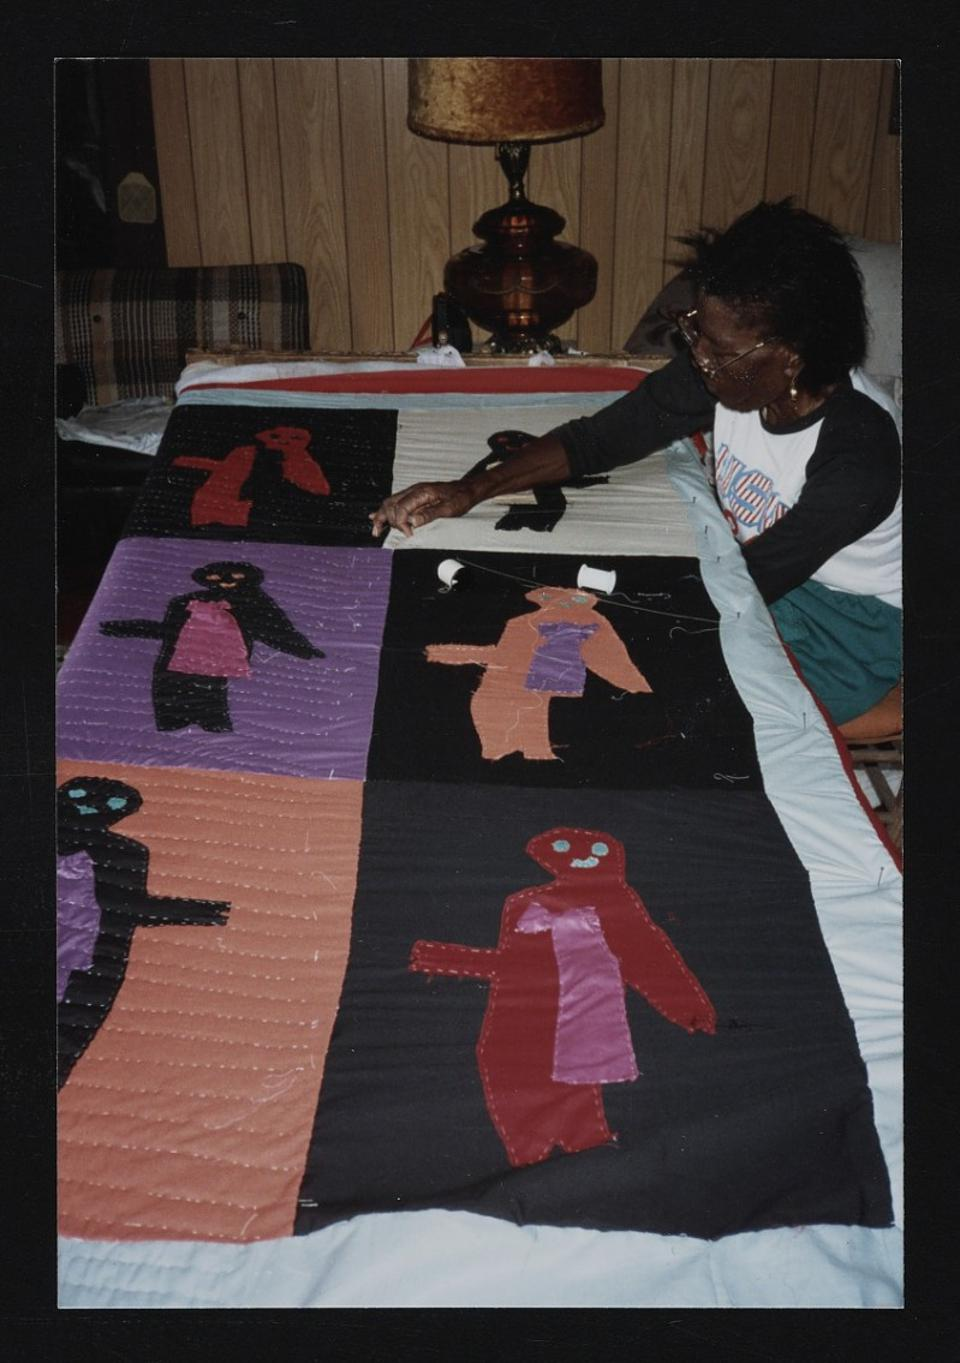 The artists Sarah Mary Taylor working on a quilt.